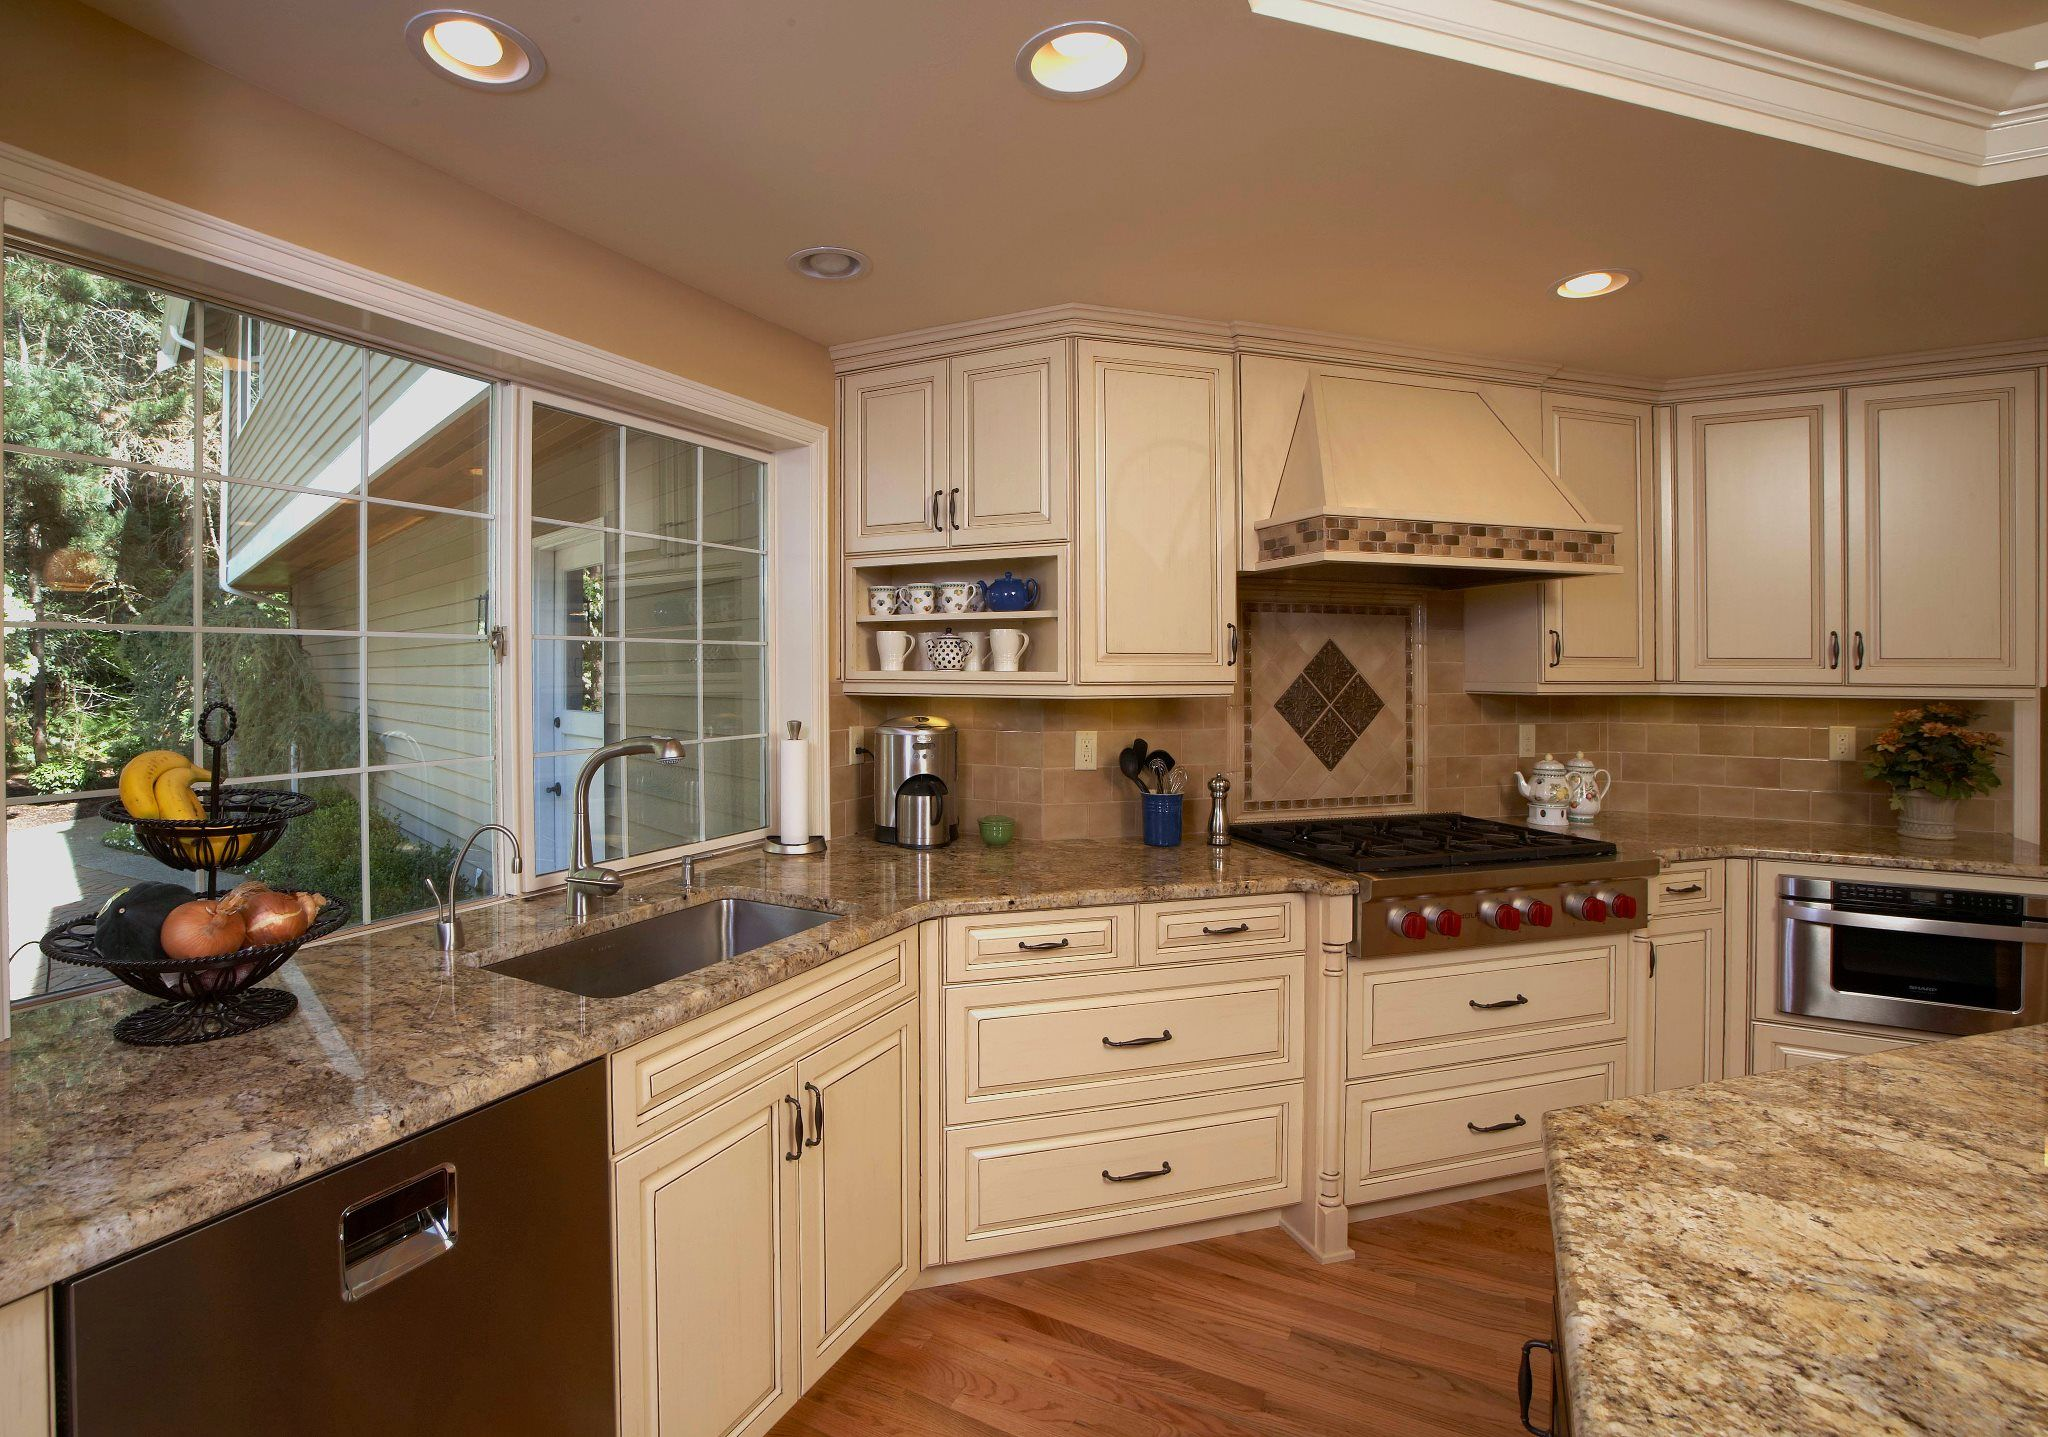 Beautiful Kitchen. Granite is Golden Beach with a